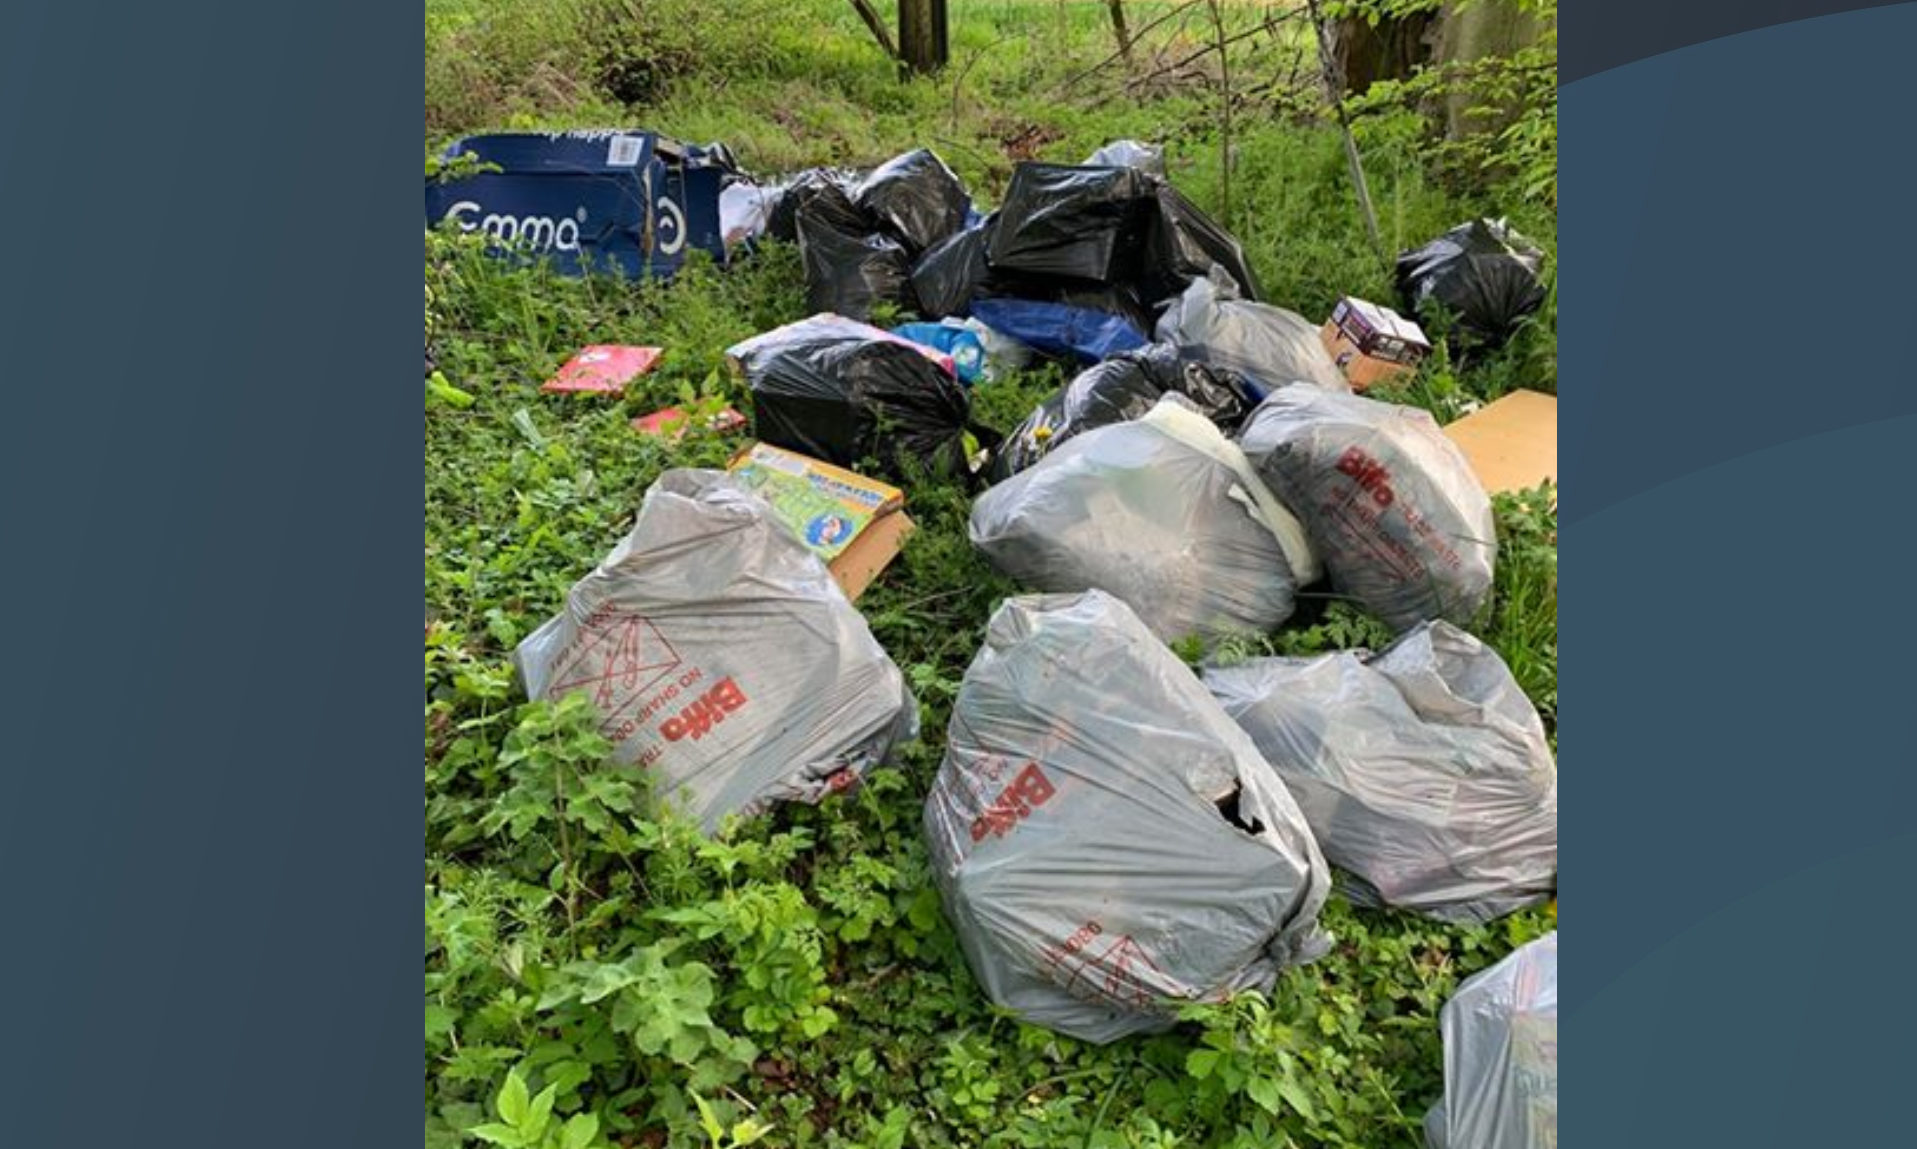 The waste that had been traced to a Dundee residence due to details of a name and address found among the waste.